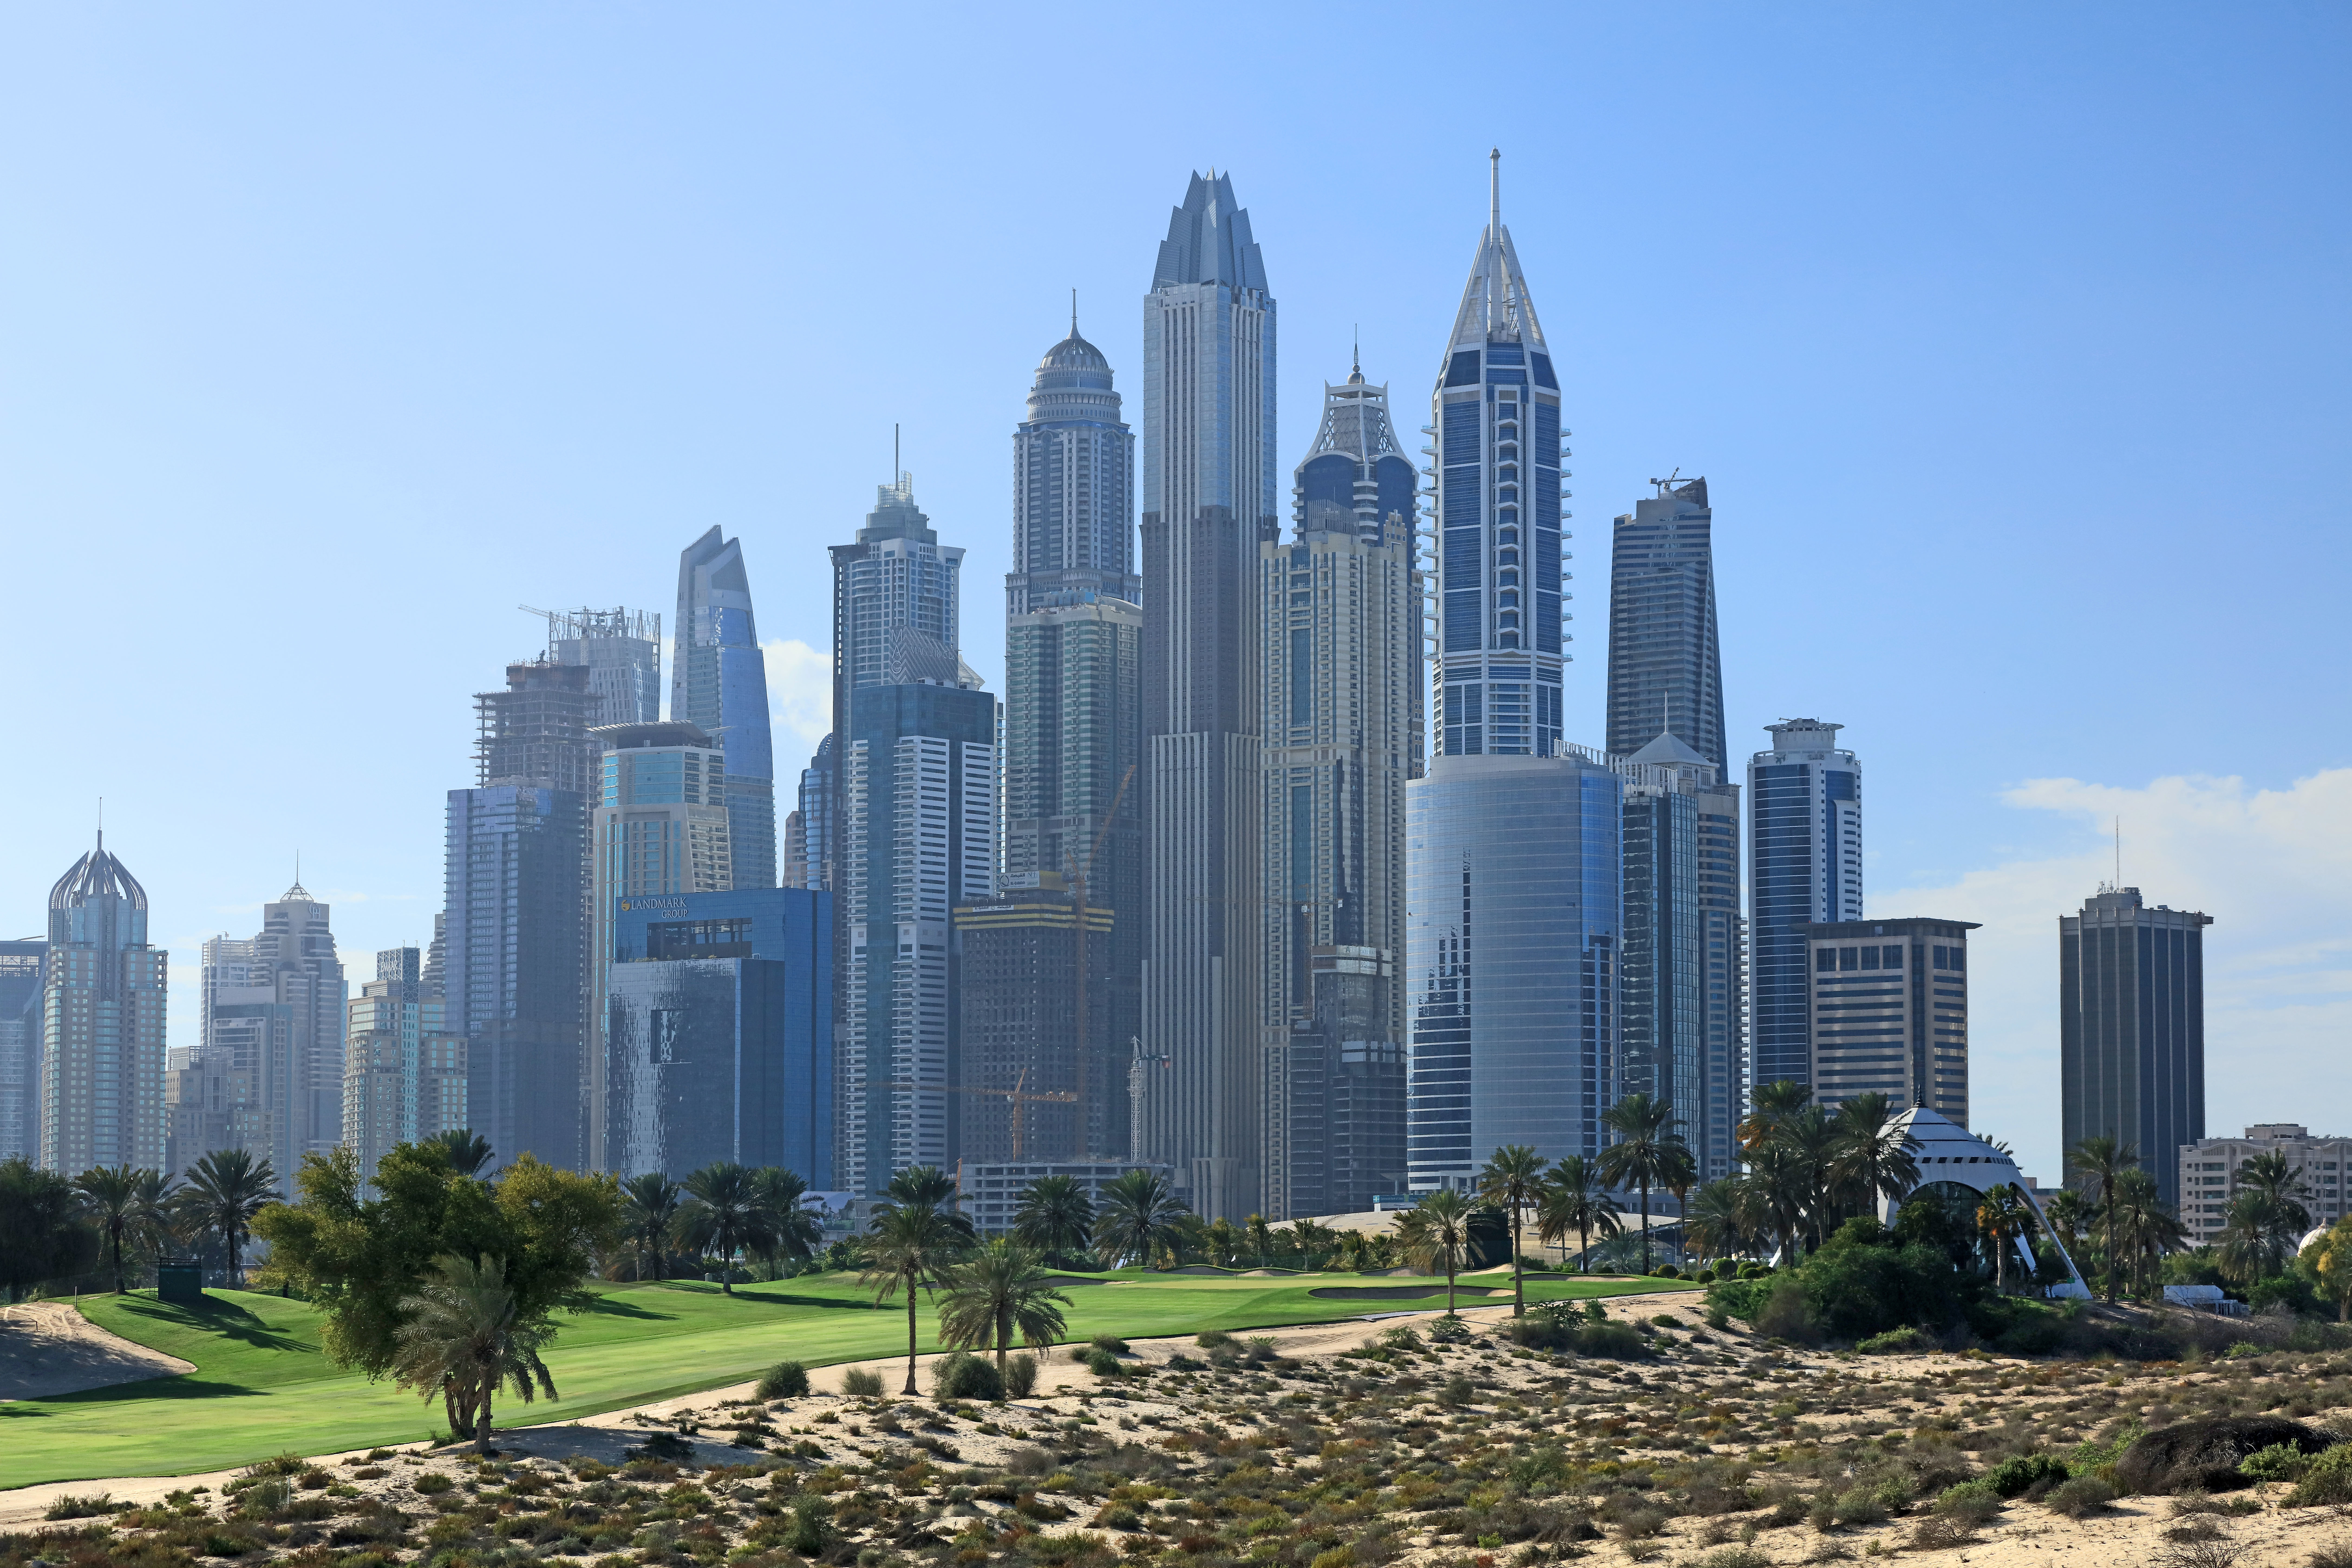 he Majlis Course with the skyline of the Dubai Marina behind at The Emirates Golf Club on January 31, 2018.